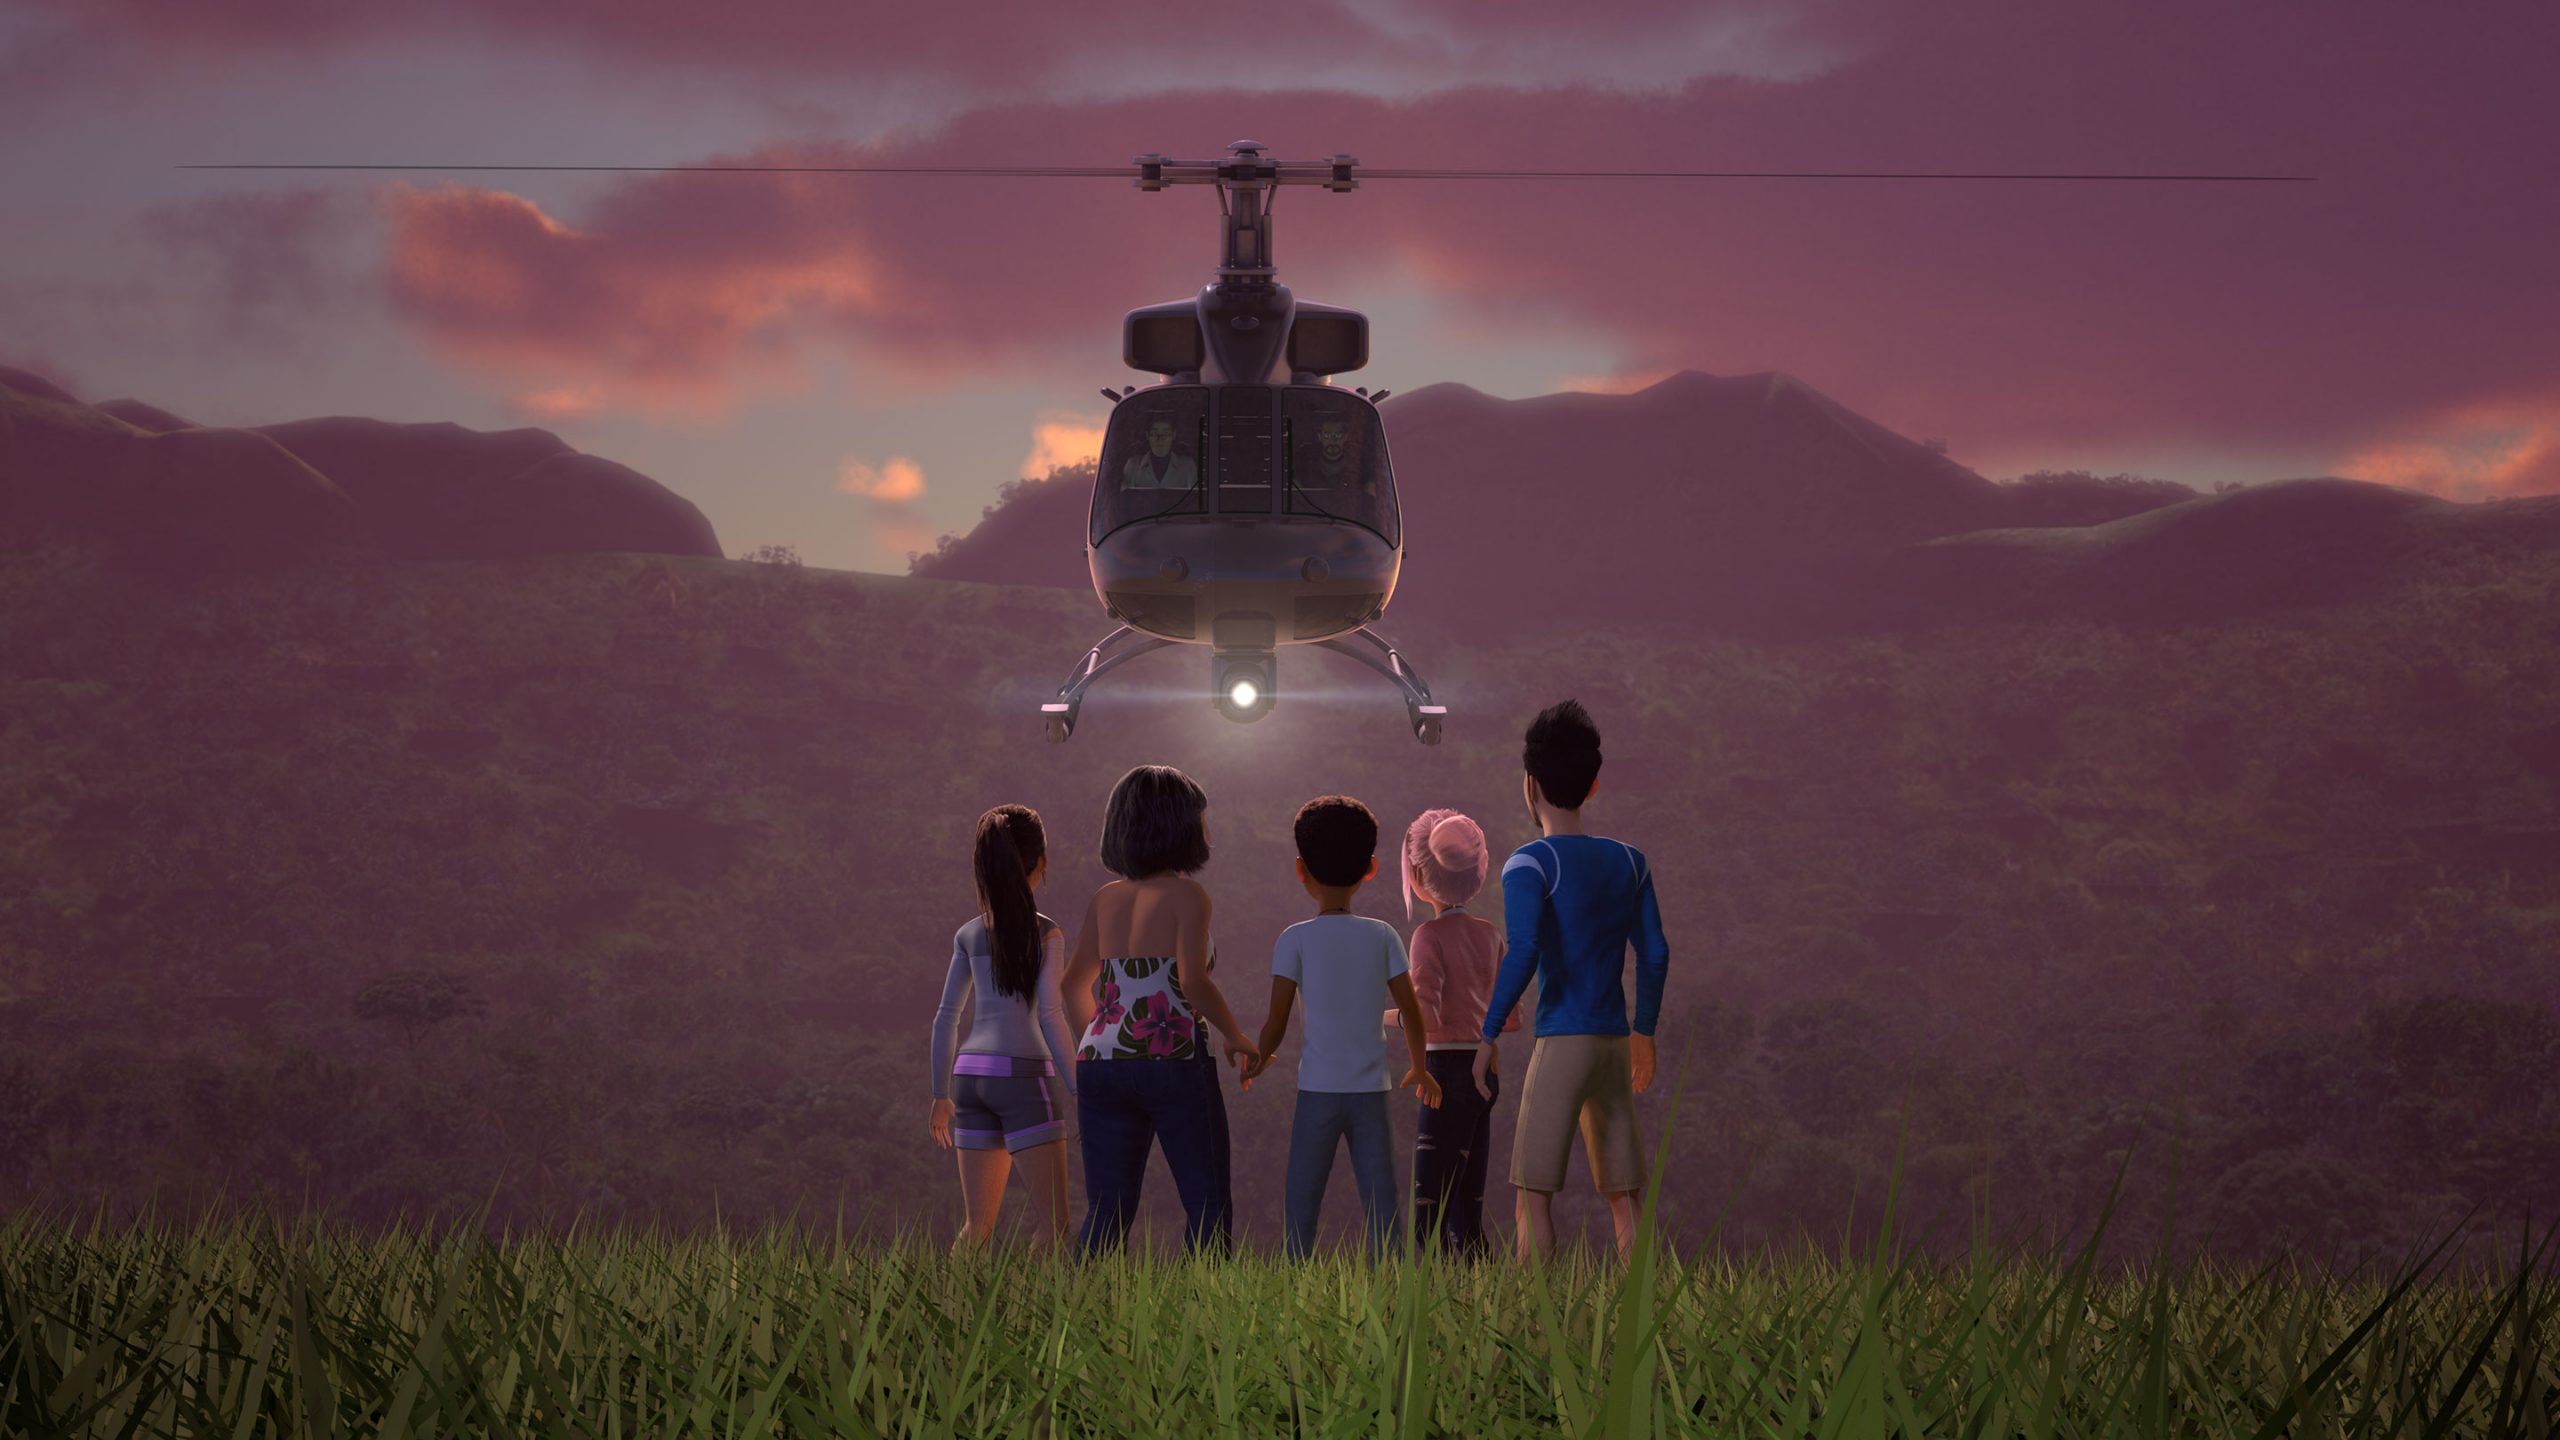 Jurassic World Camp Cretaceous Season 3 Review: Something Has Evolved